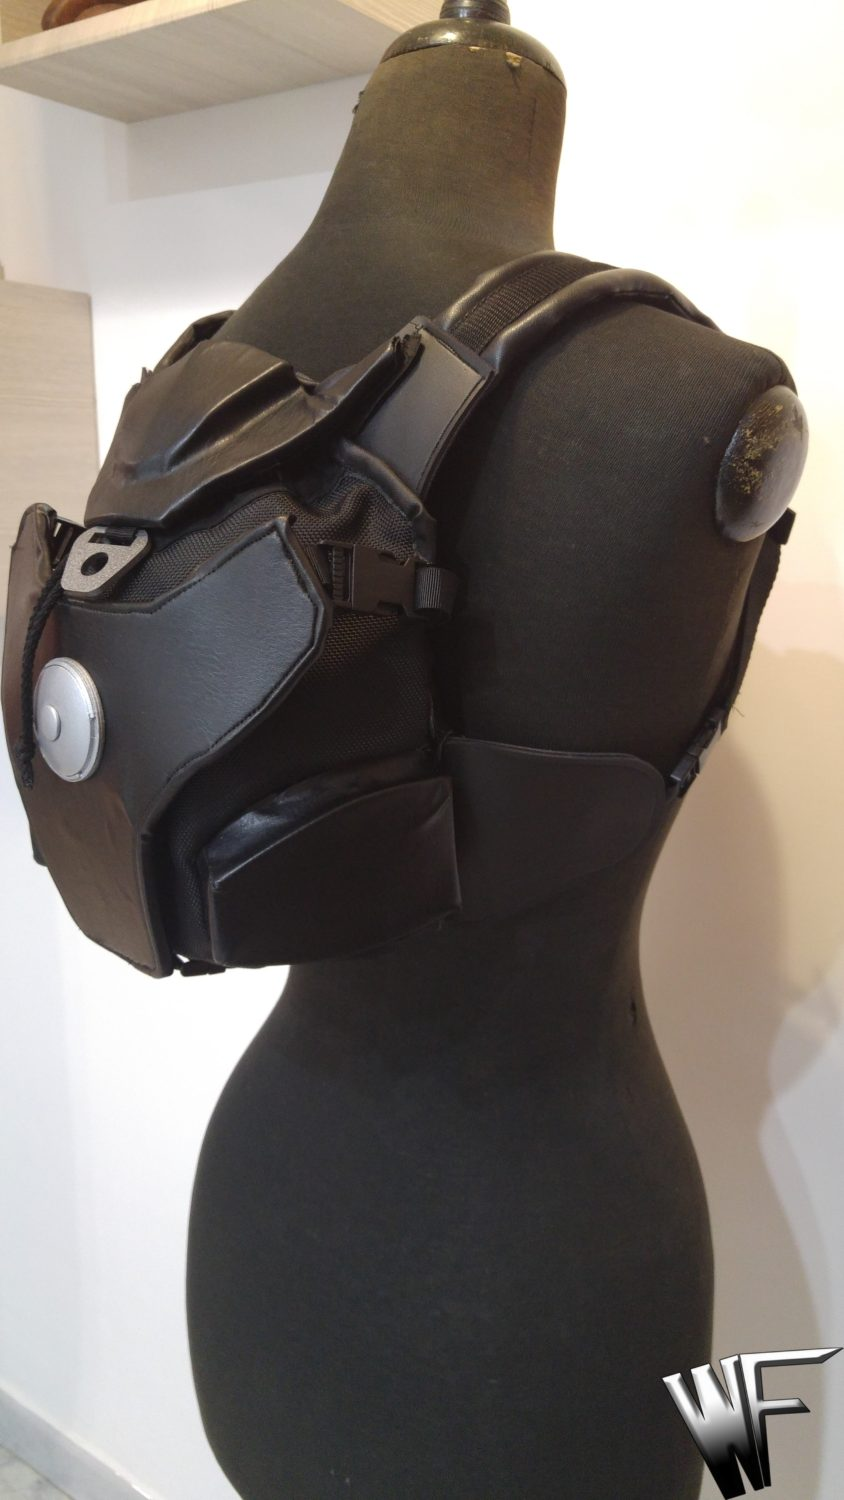 lara croft backpack cosplay